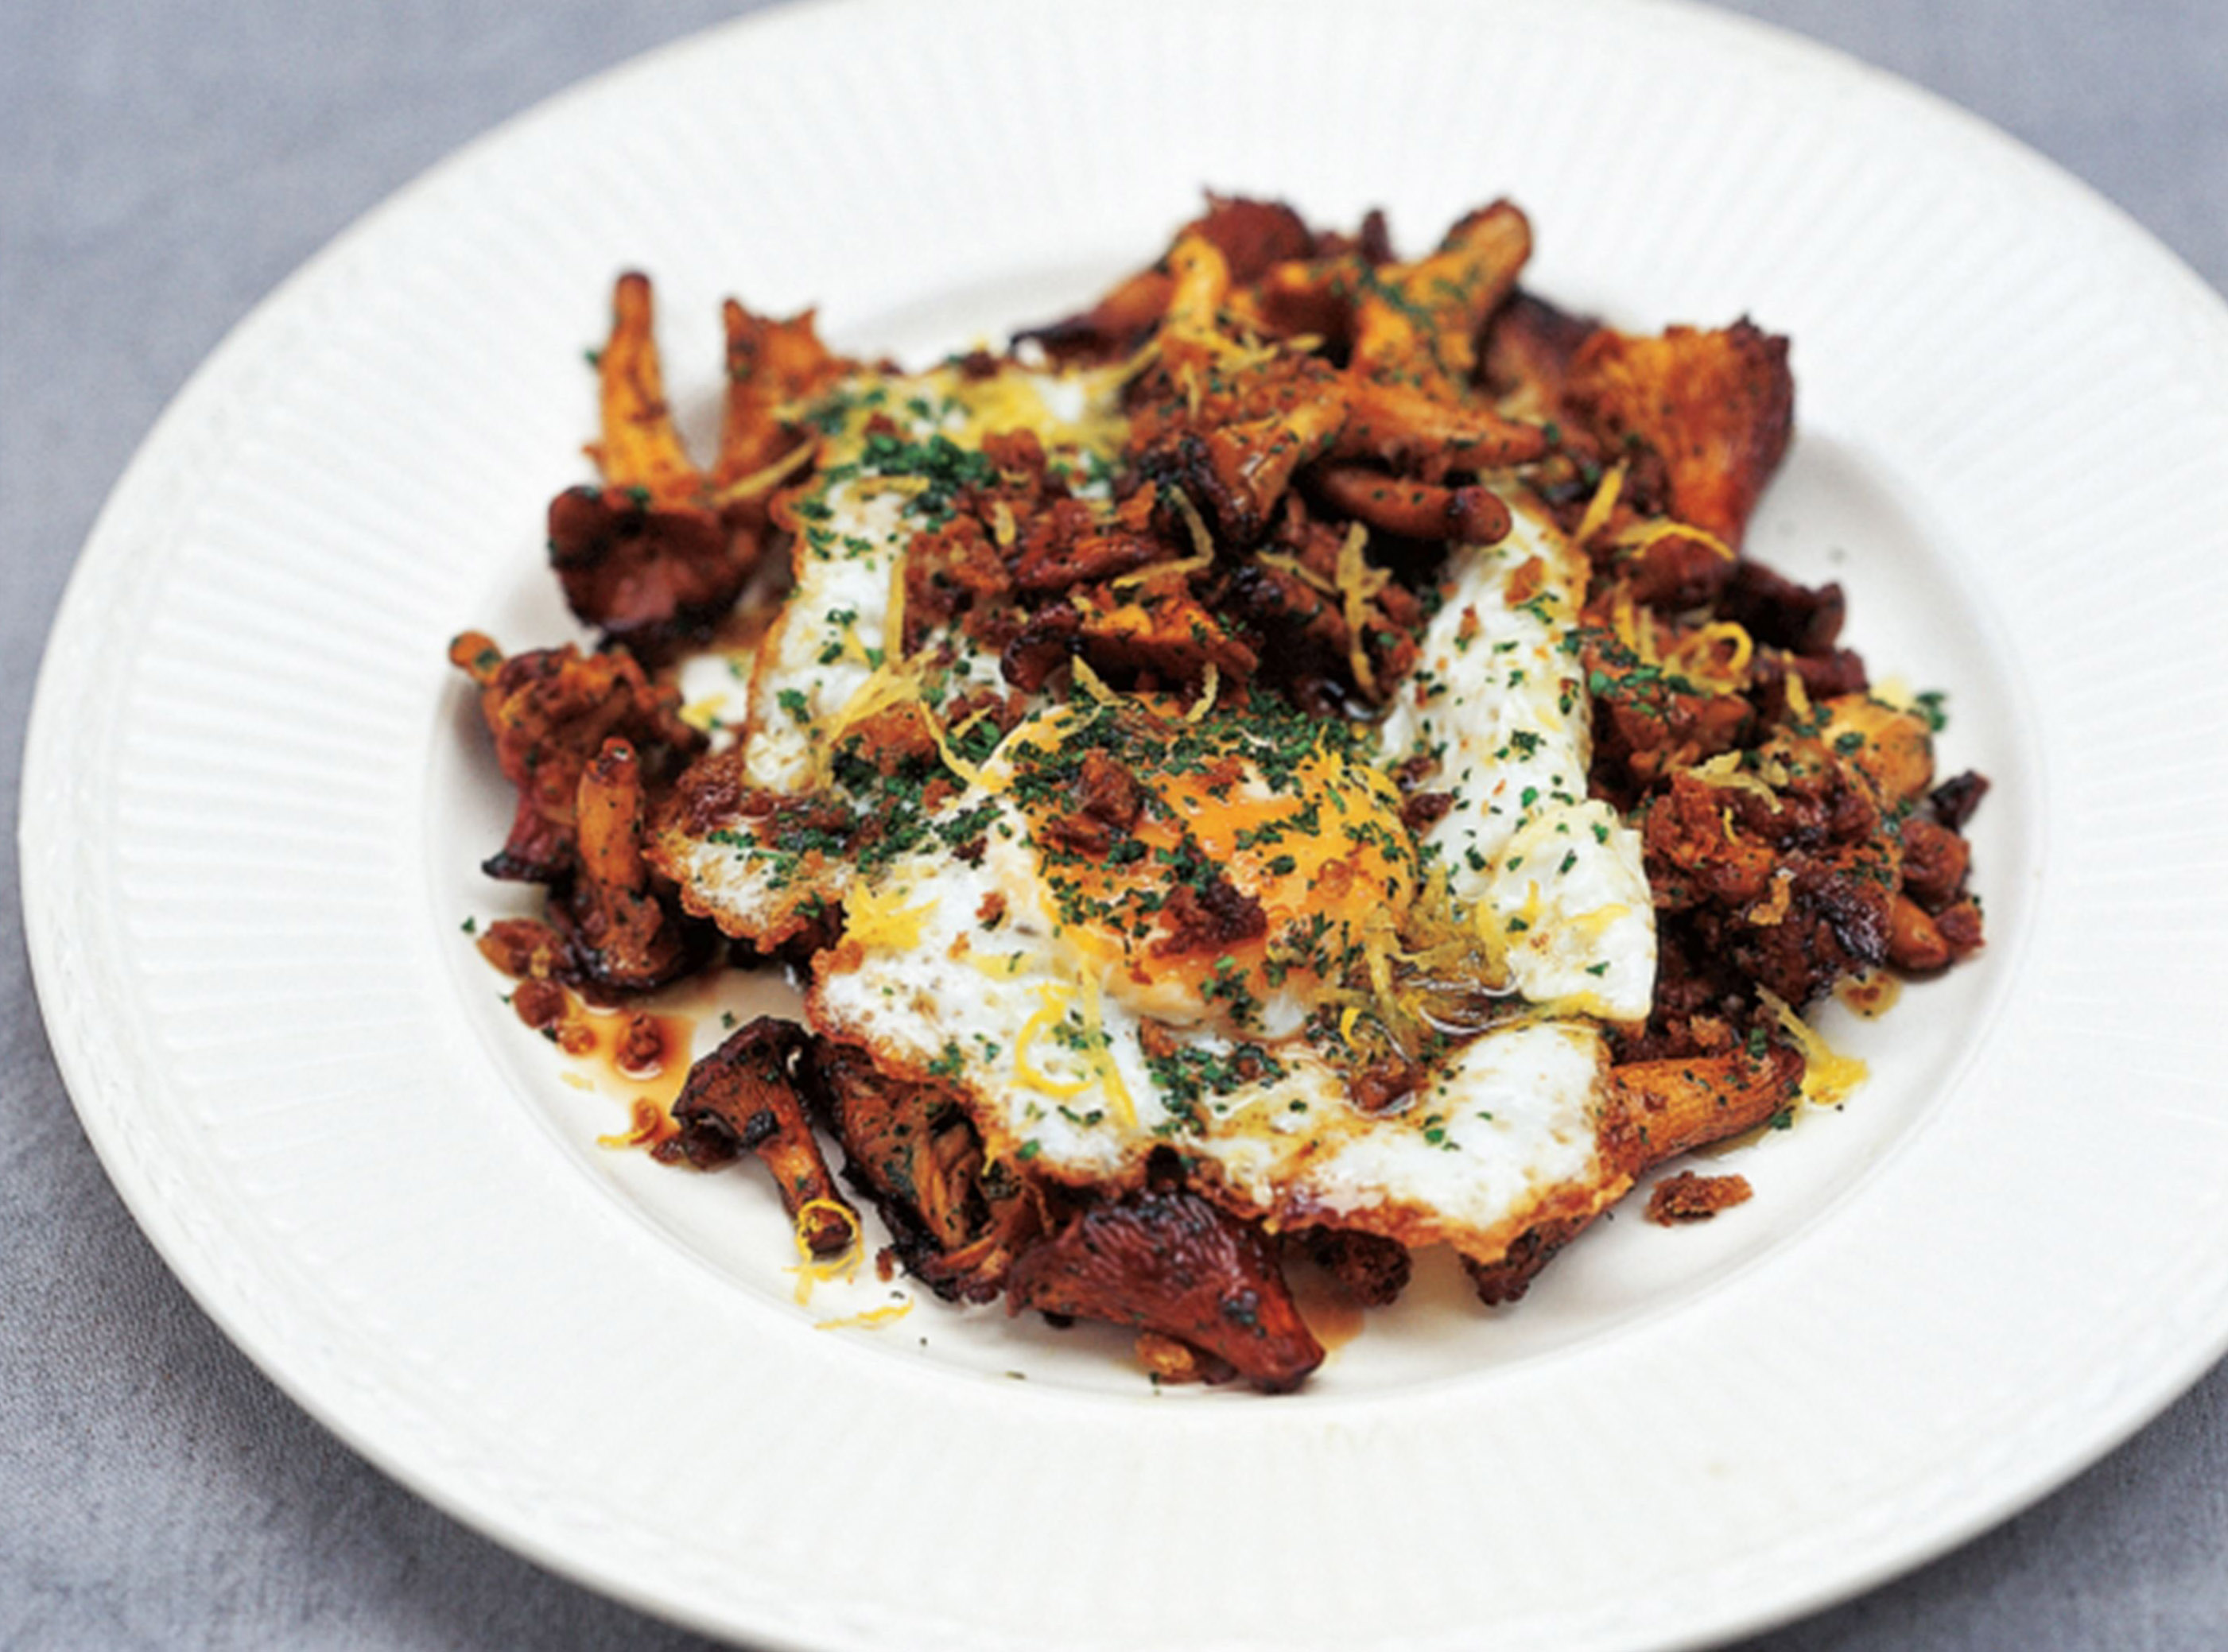 Girolles with fried egg and sourdough breadcrumbs